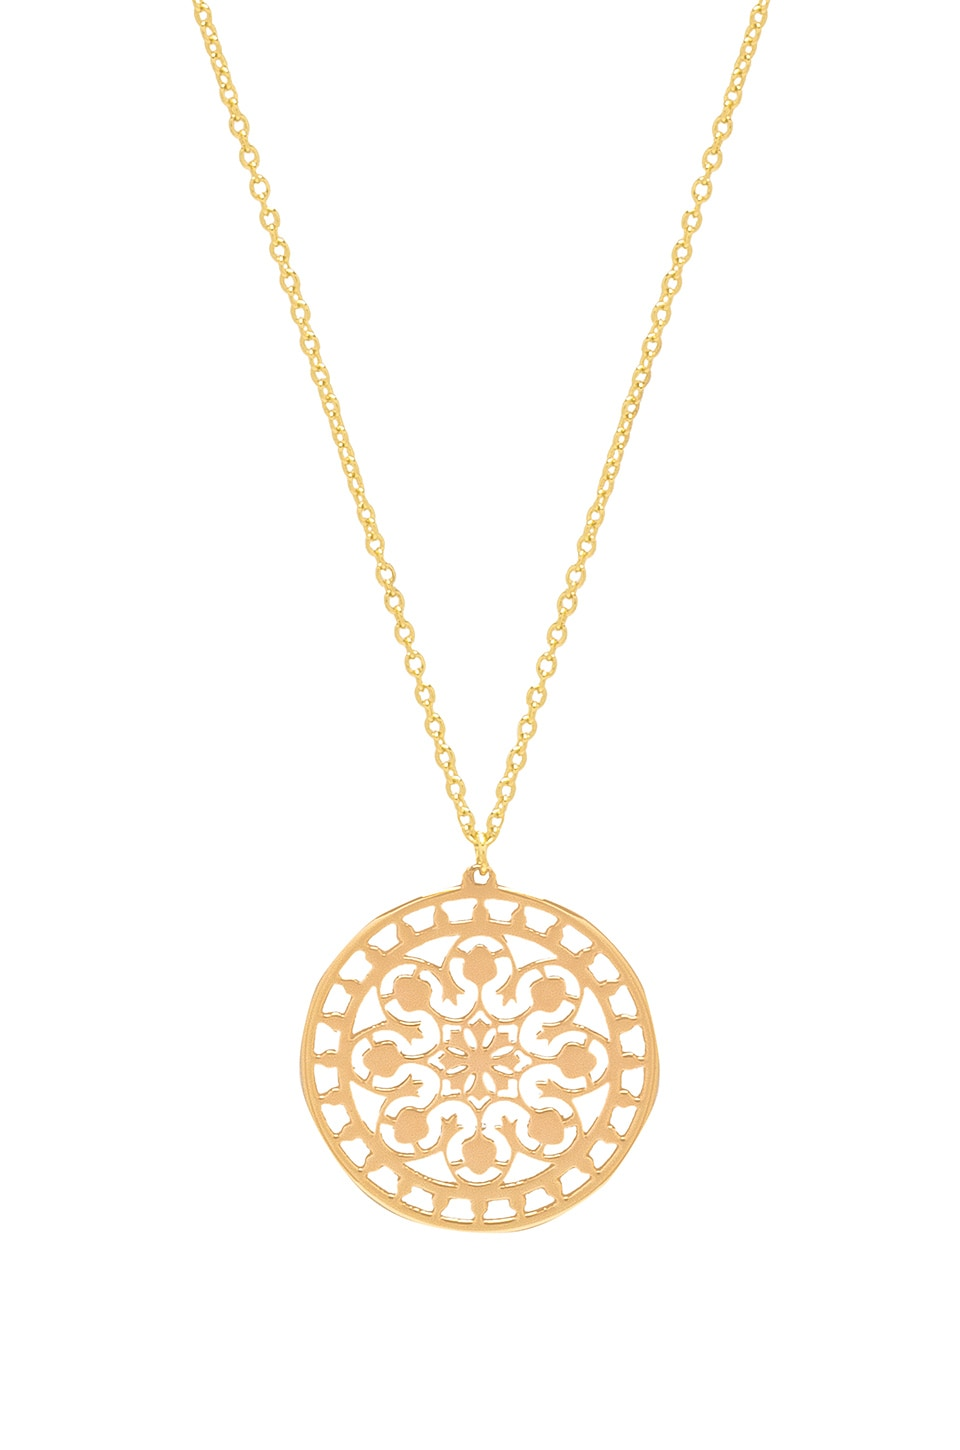 Elizabeth Stone Flora Coin Necklace in Gold